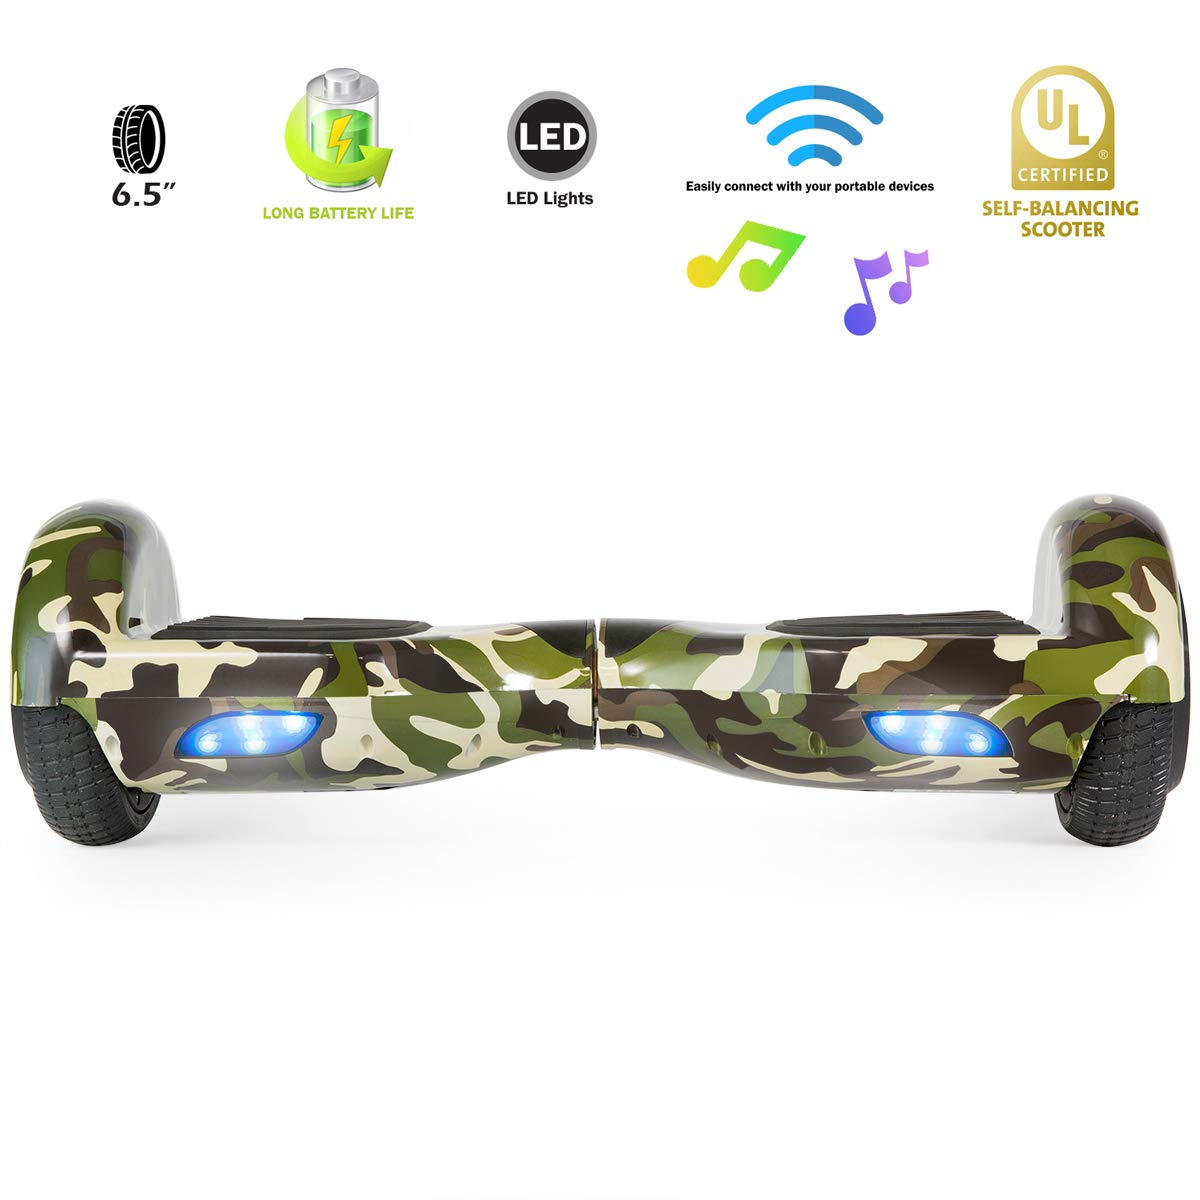 XPRIT Easter Sale Hoverboard w/Bluetooth Speaker (Camouflage) by XPRIT (Image #2)